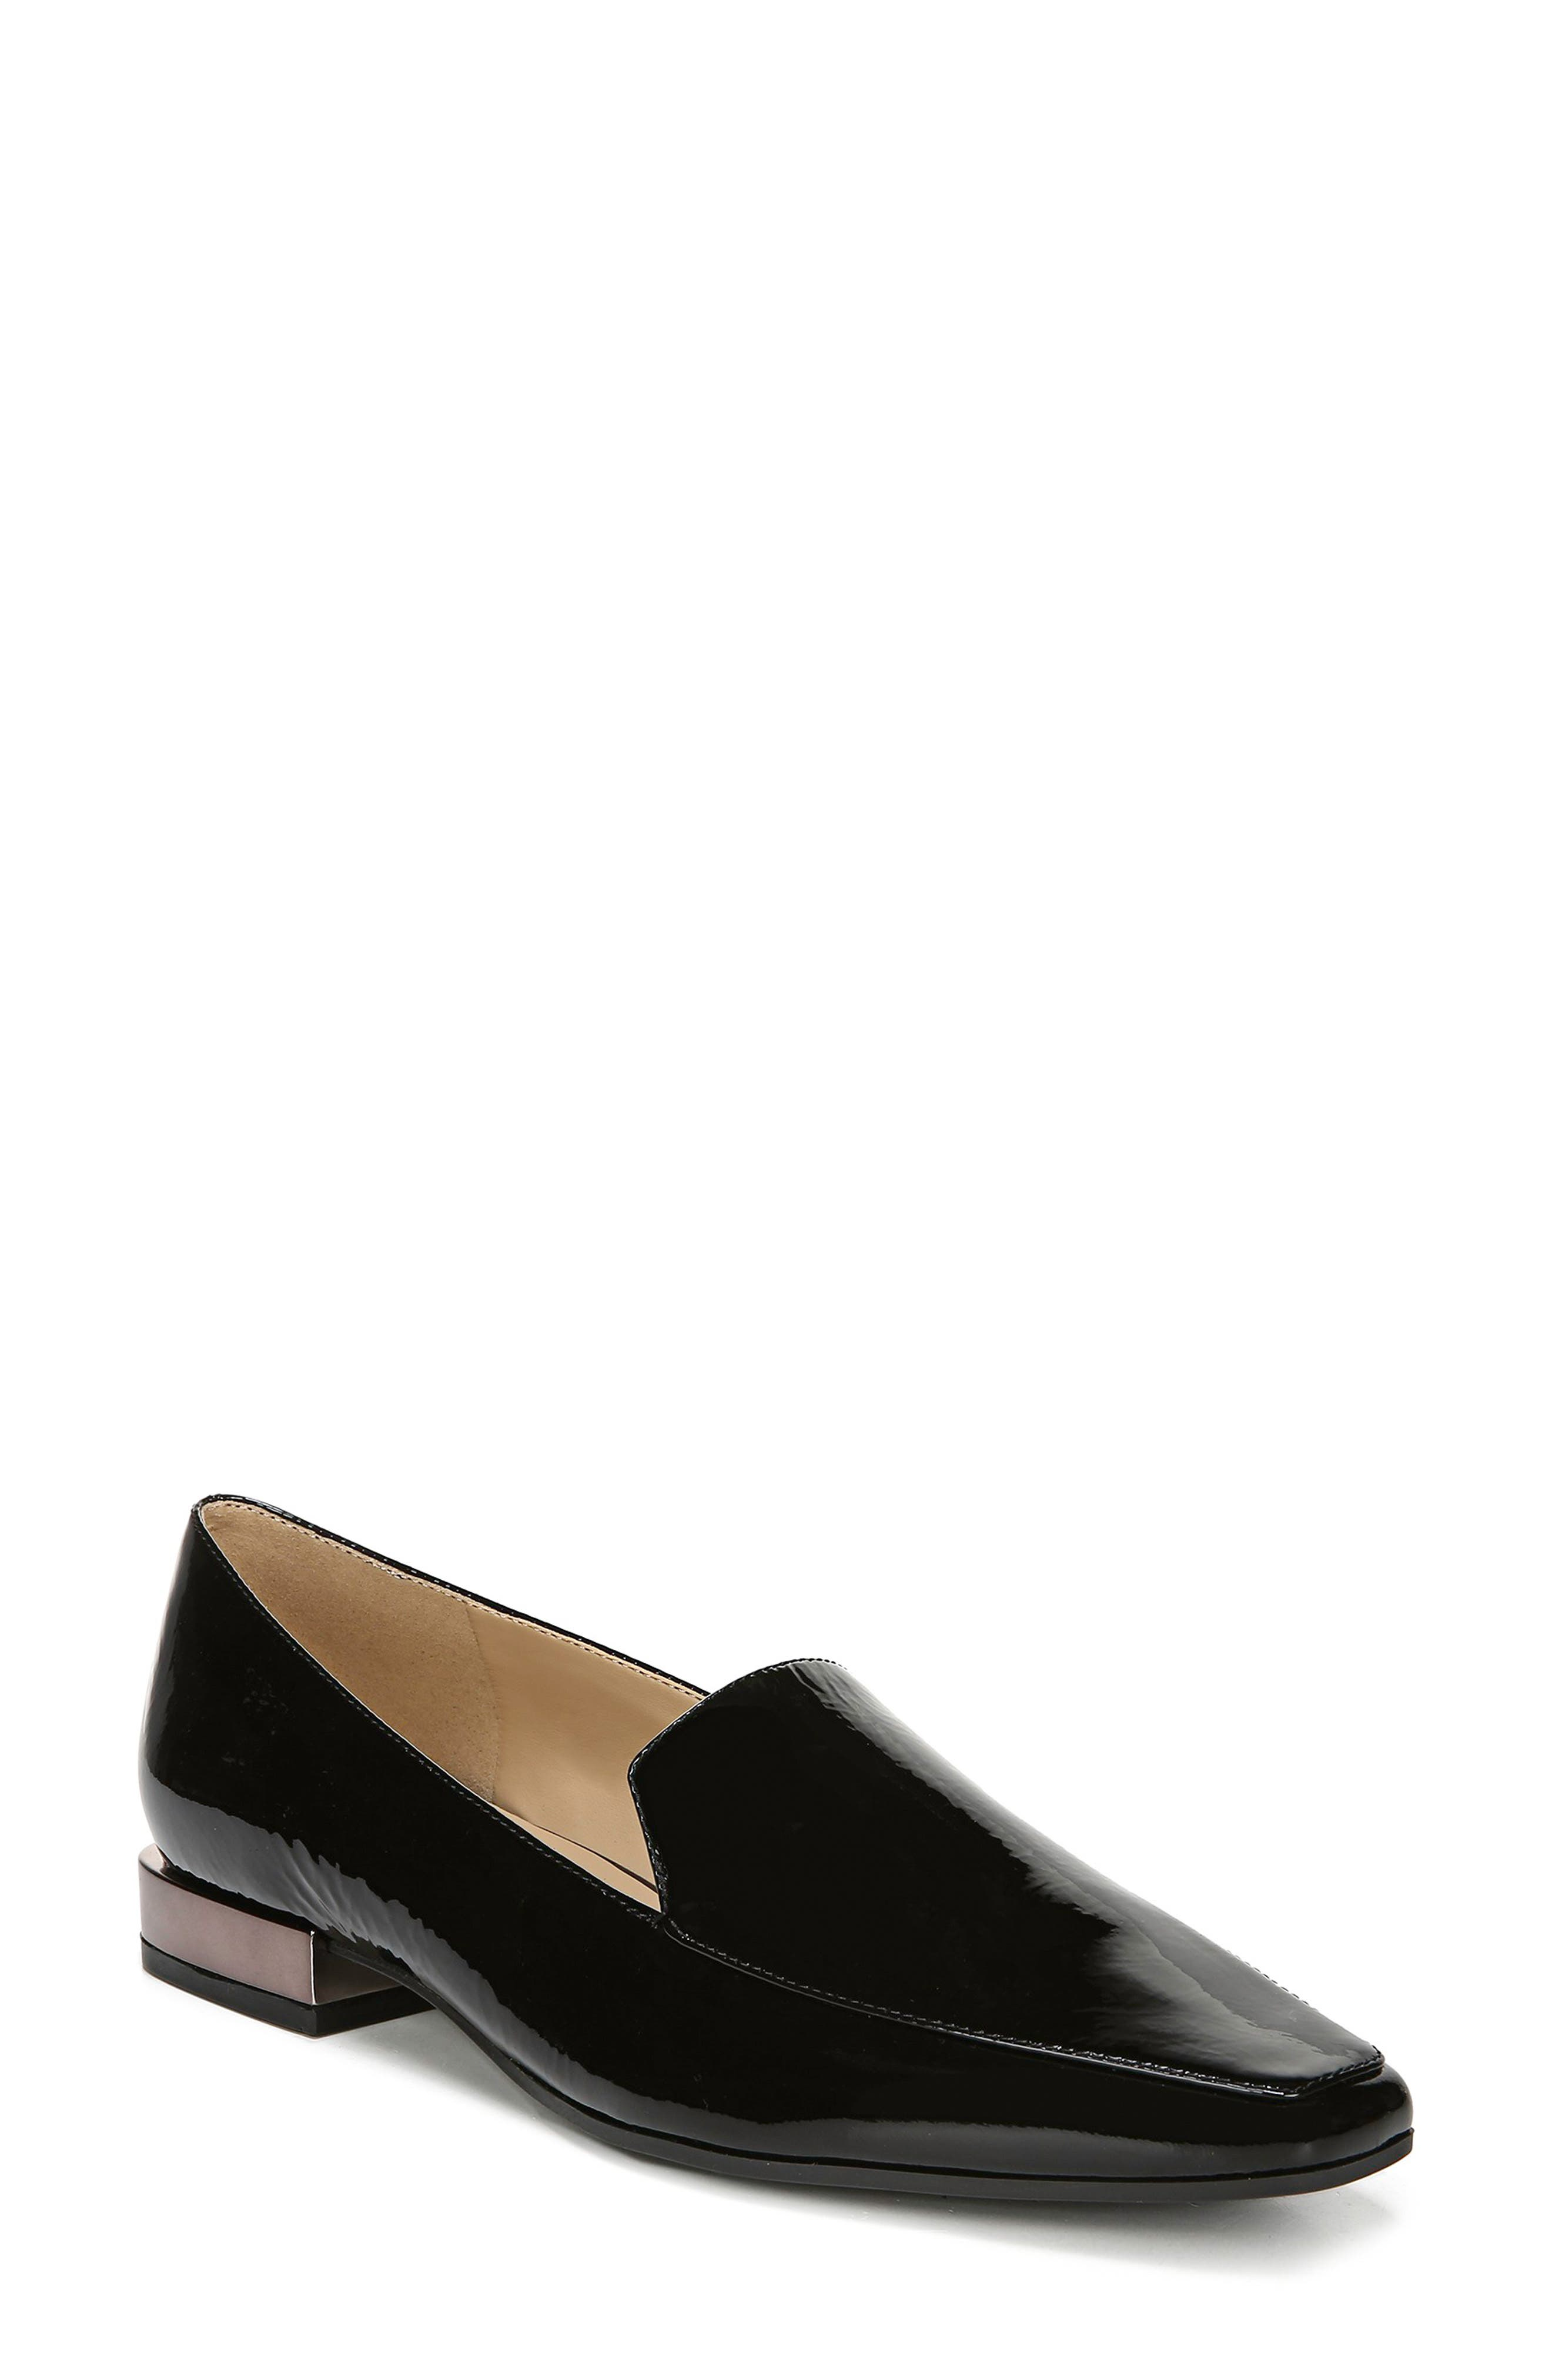 Naturalizer Clea Loafer N - Black